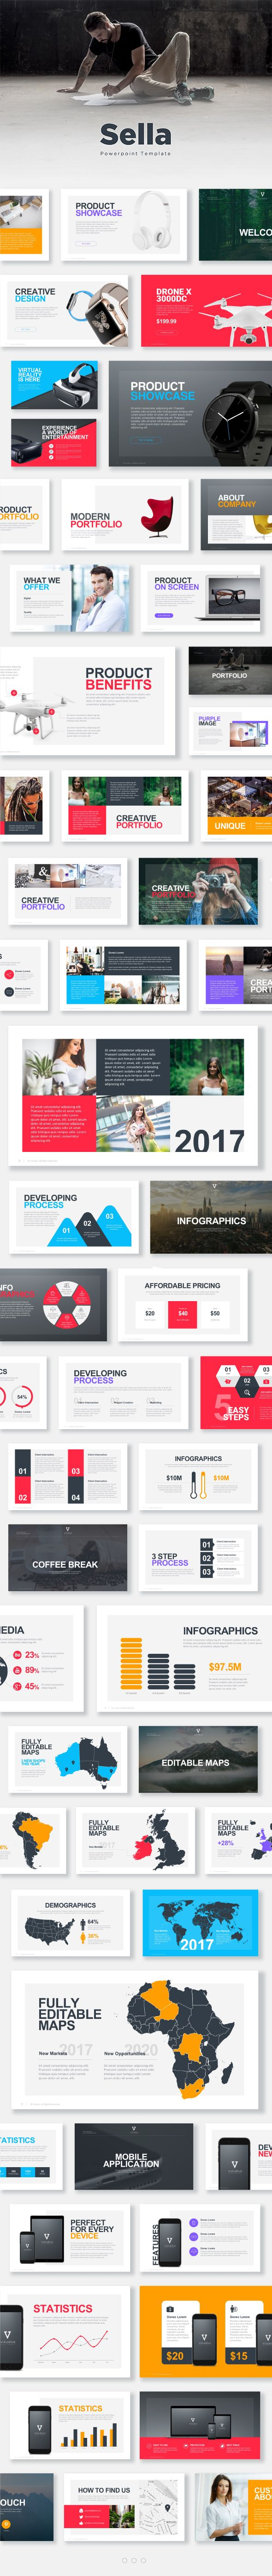 Sella Powerpoint Template #presentation #modern • Download ➝ https://graphicriver.net/item/sella-powerpoint-template/18036459?ref=pxcr